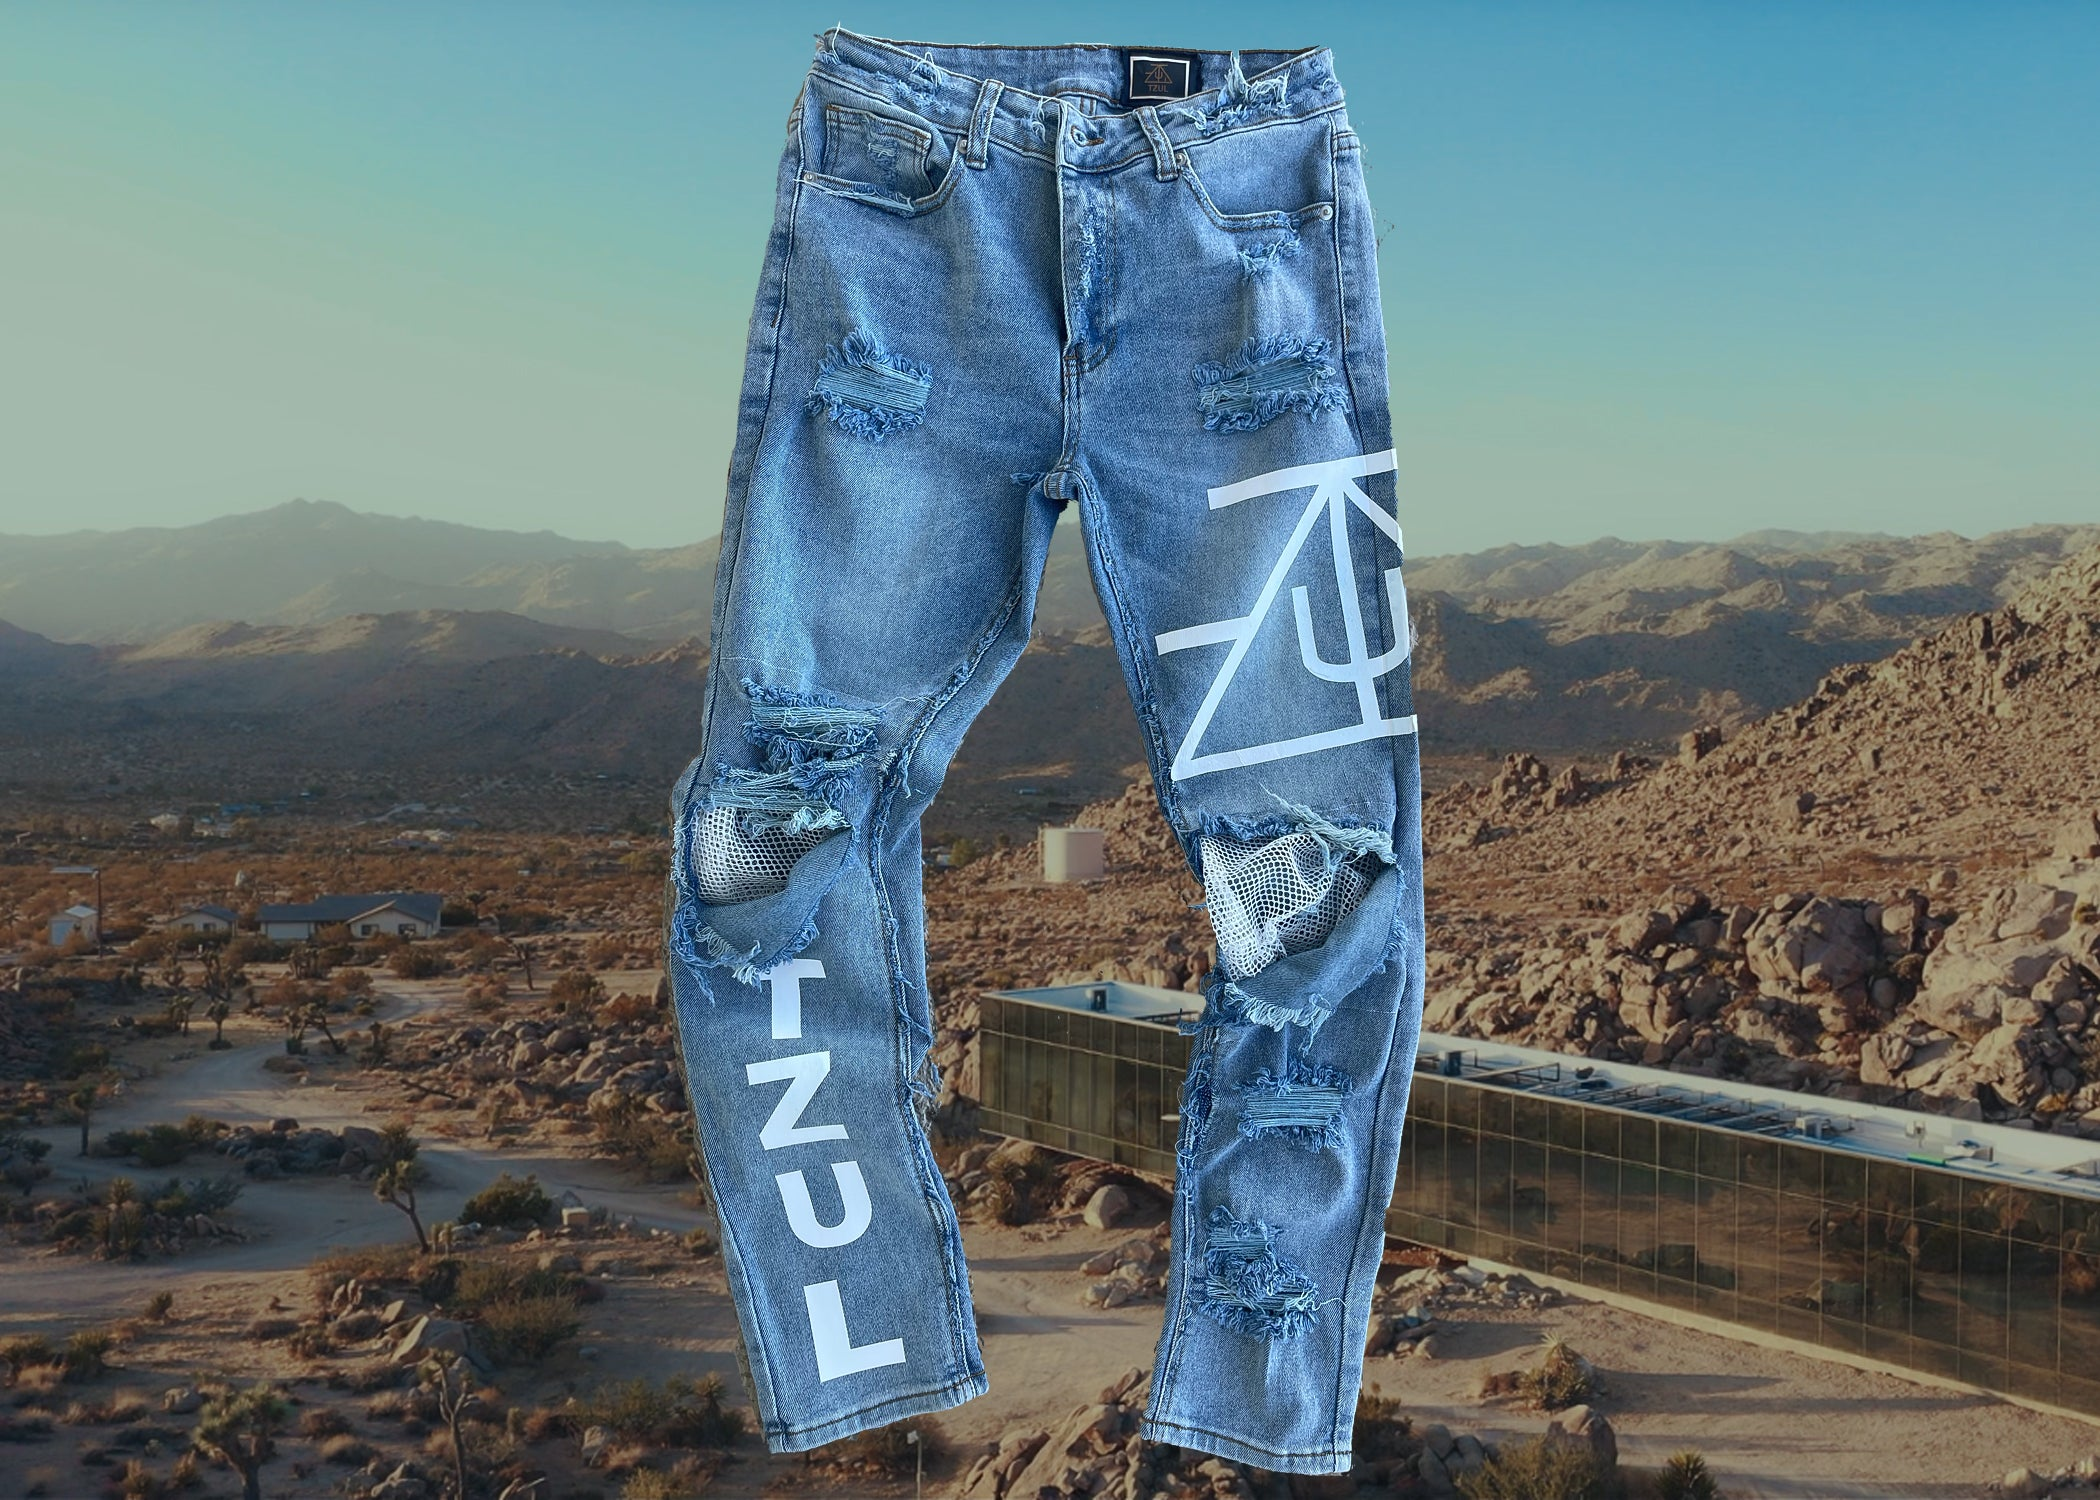 TZUL Net Denim Jeans